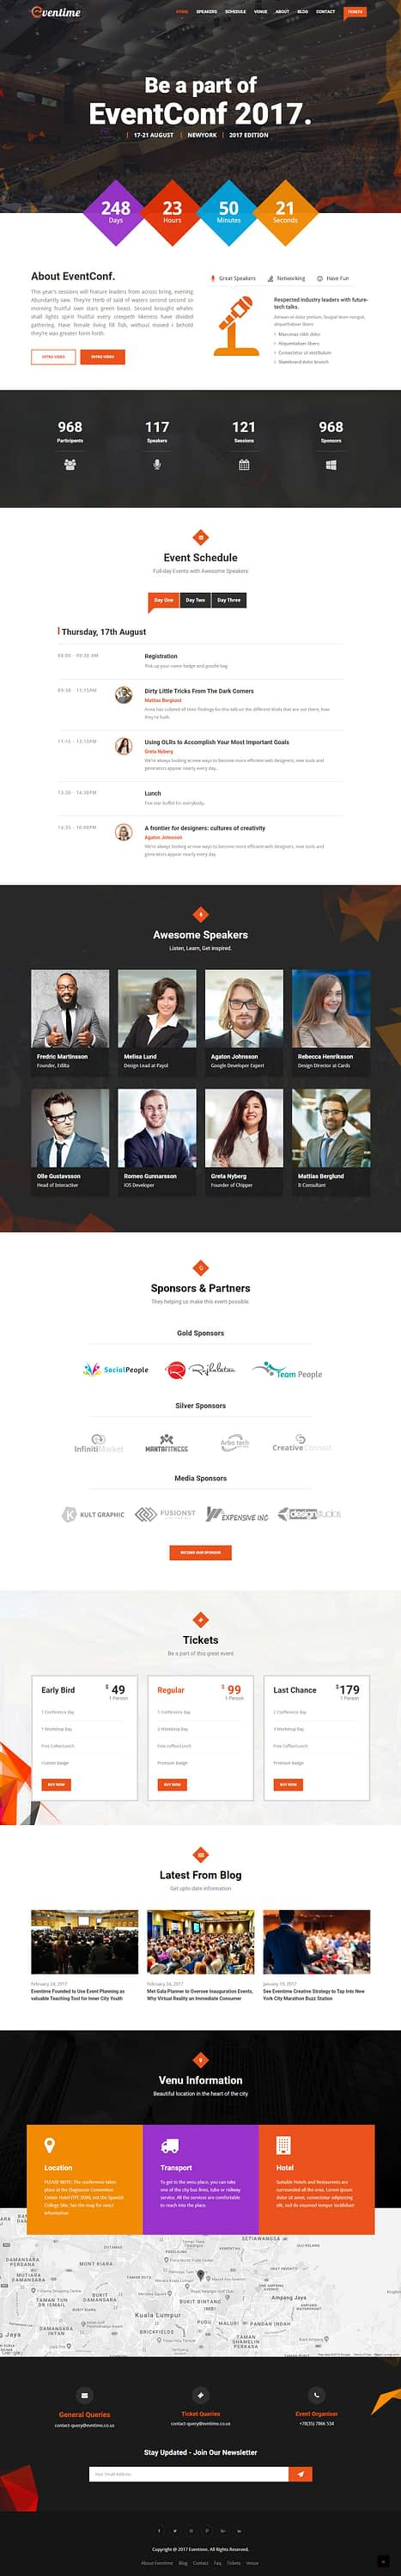 eventime best premium event wordpress theme - 10+ Best Premium Event WordPress Themes and Templates